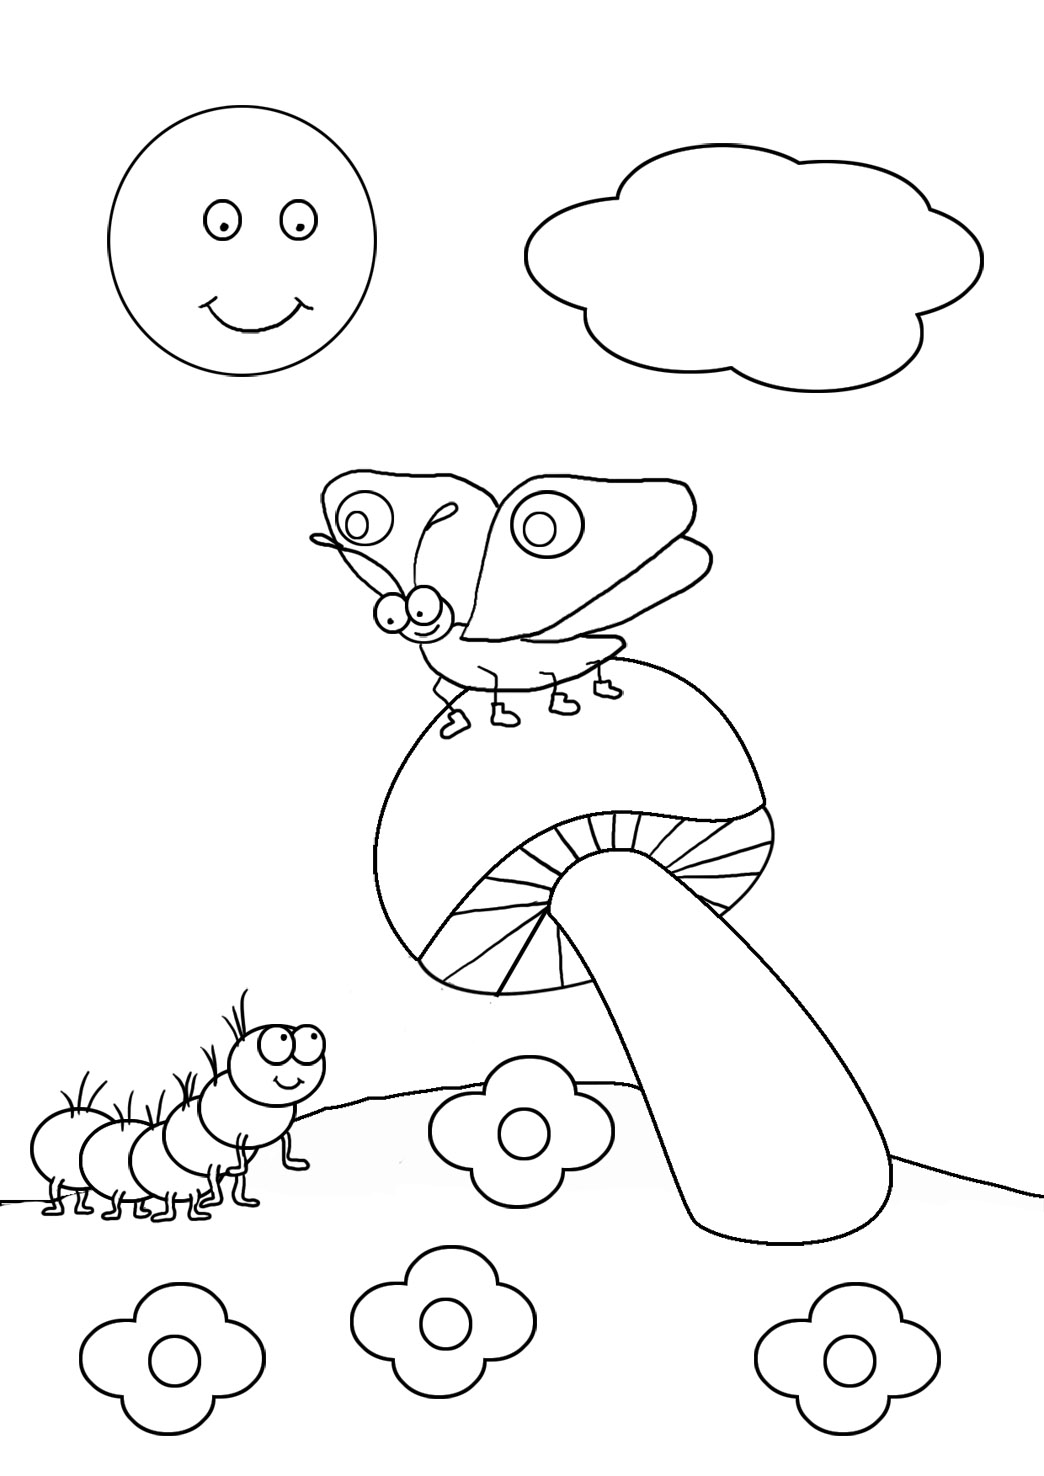 caterpillar and butterfly drawing